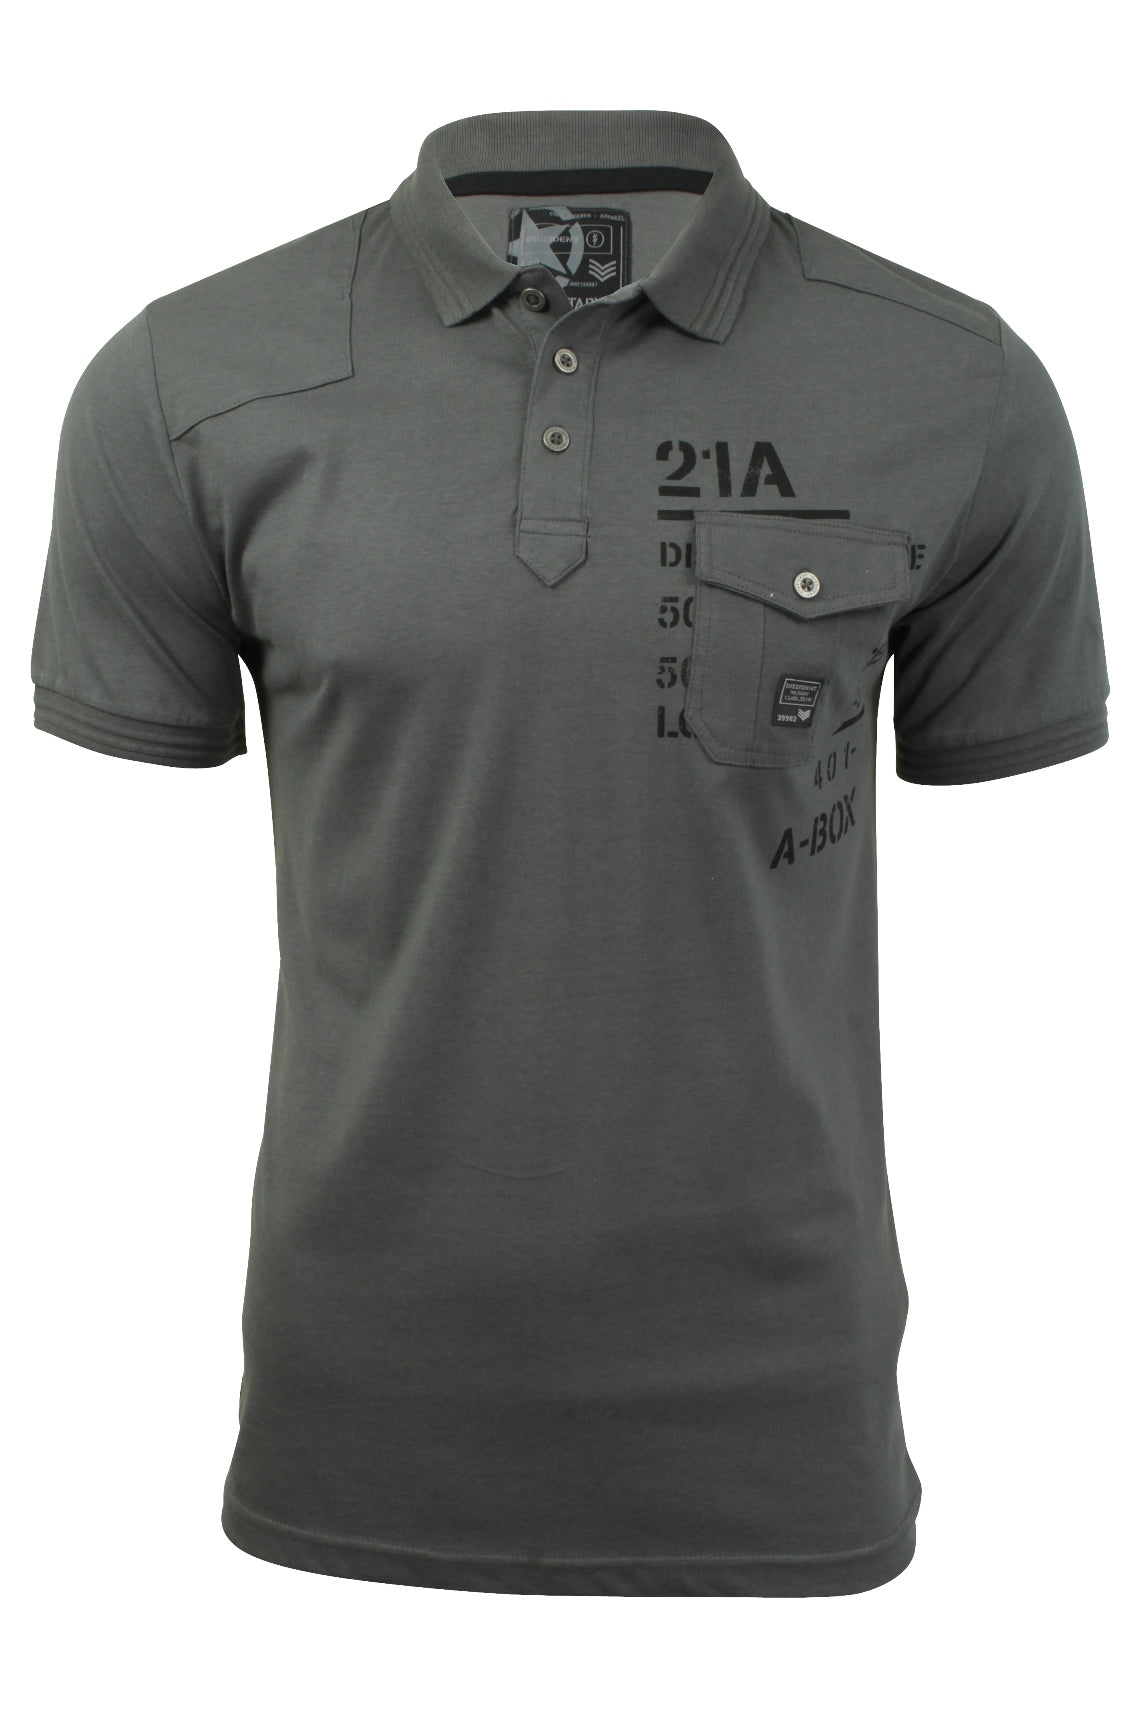 Mens Polo T-Shirt by Dissident 'Milicia' Short Sleeved-Main Image